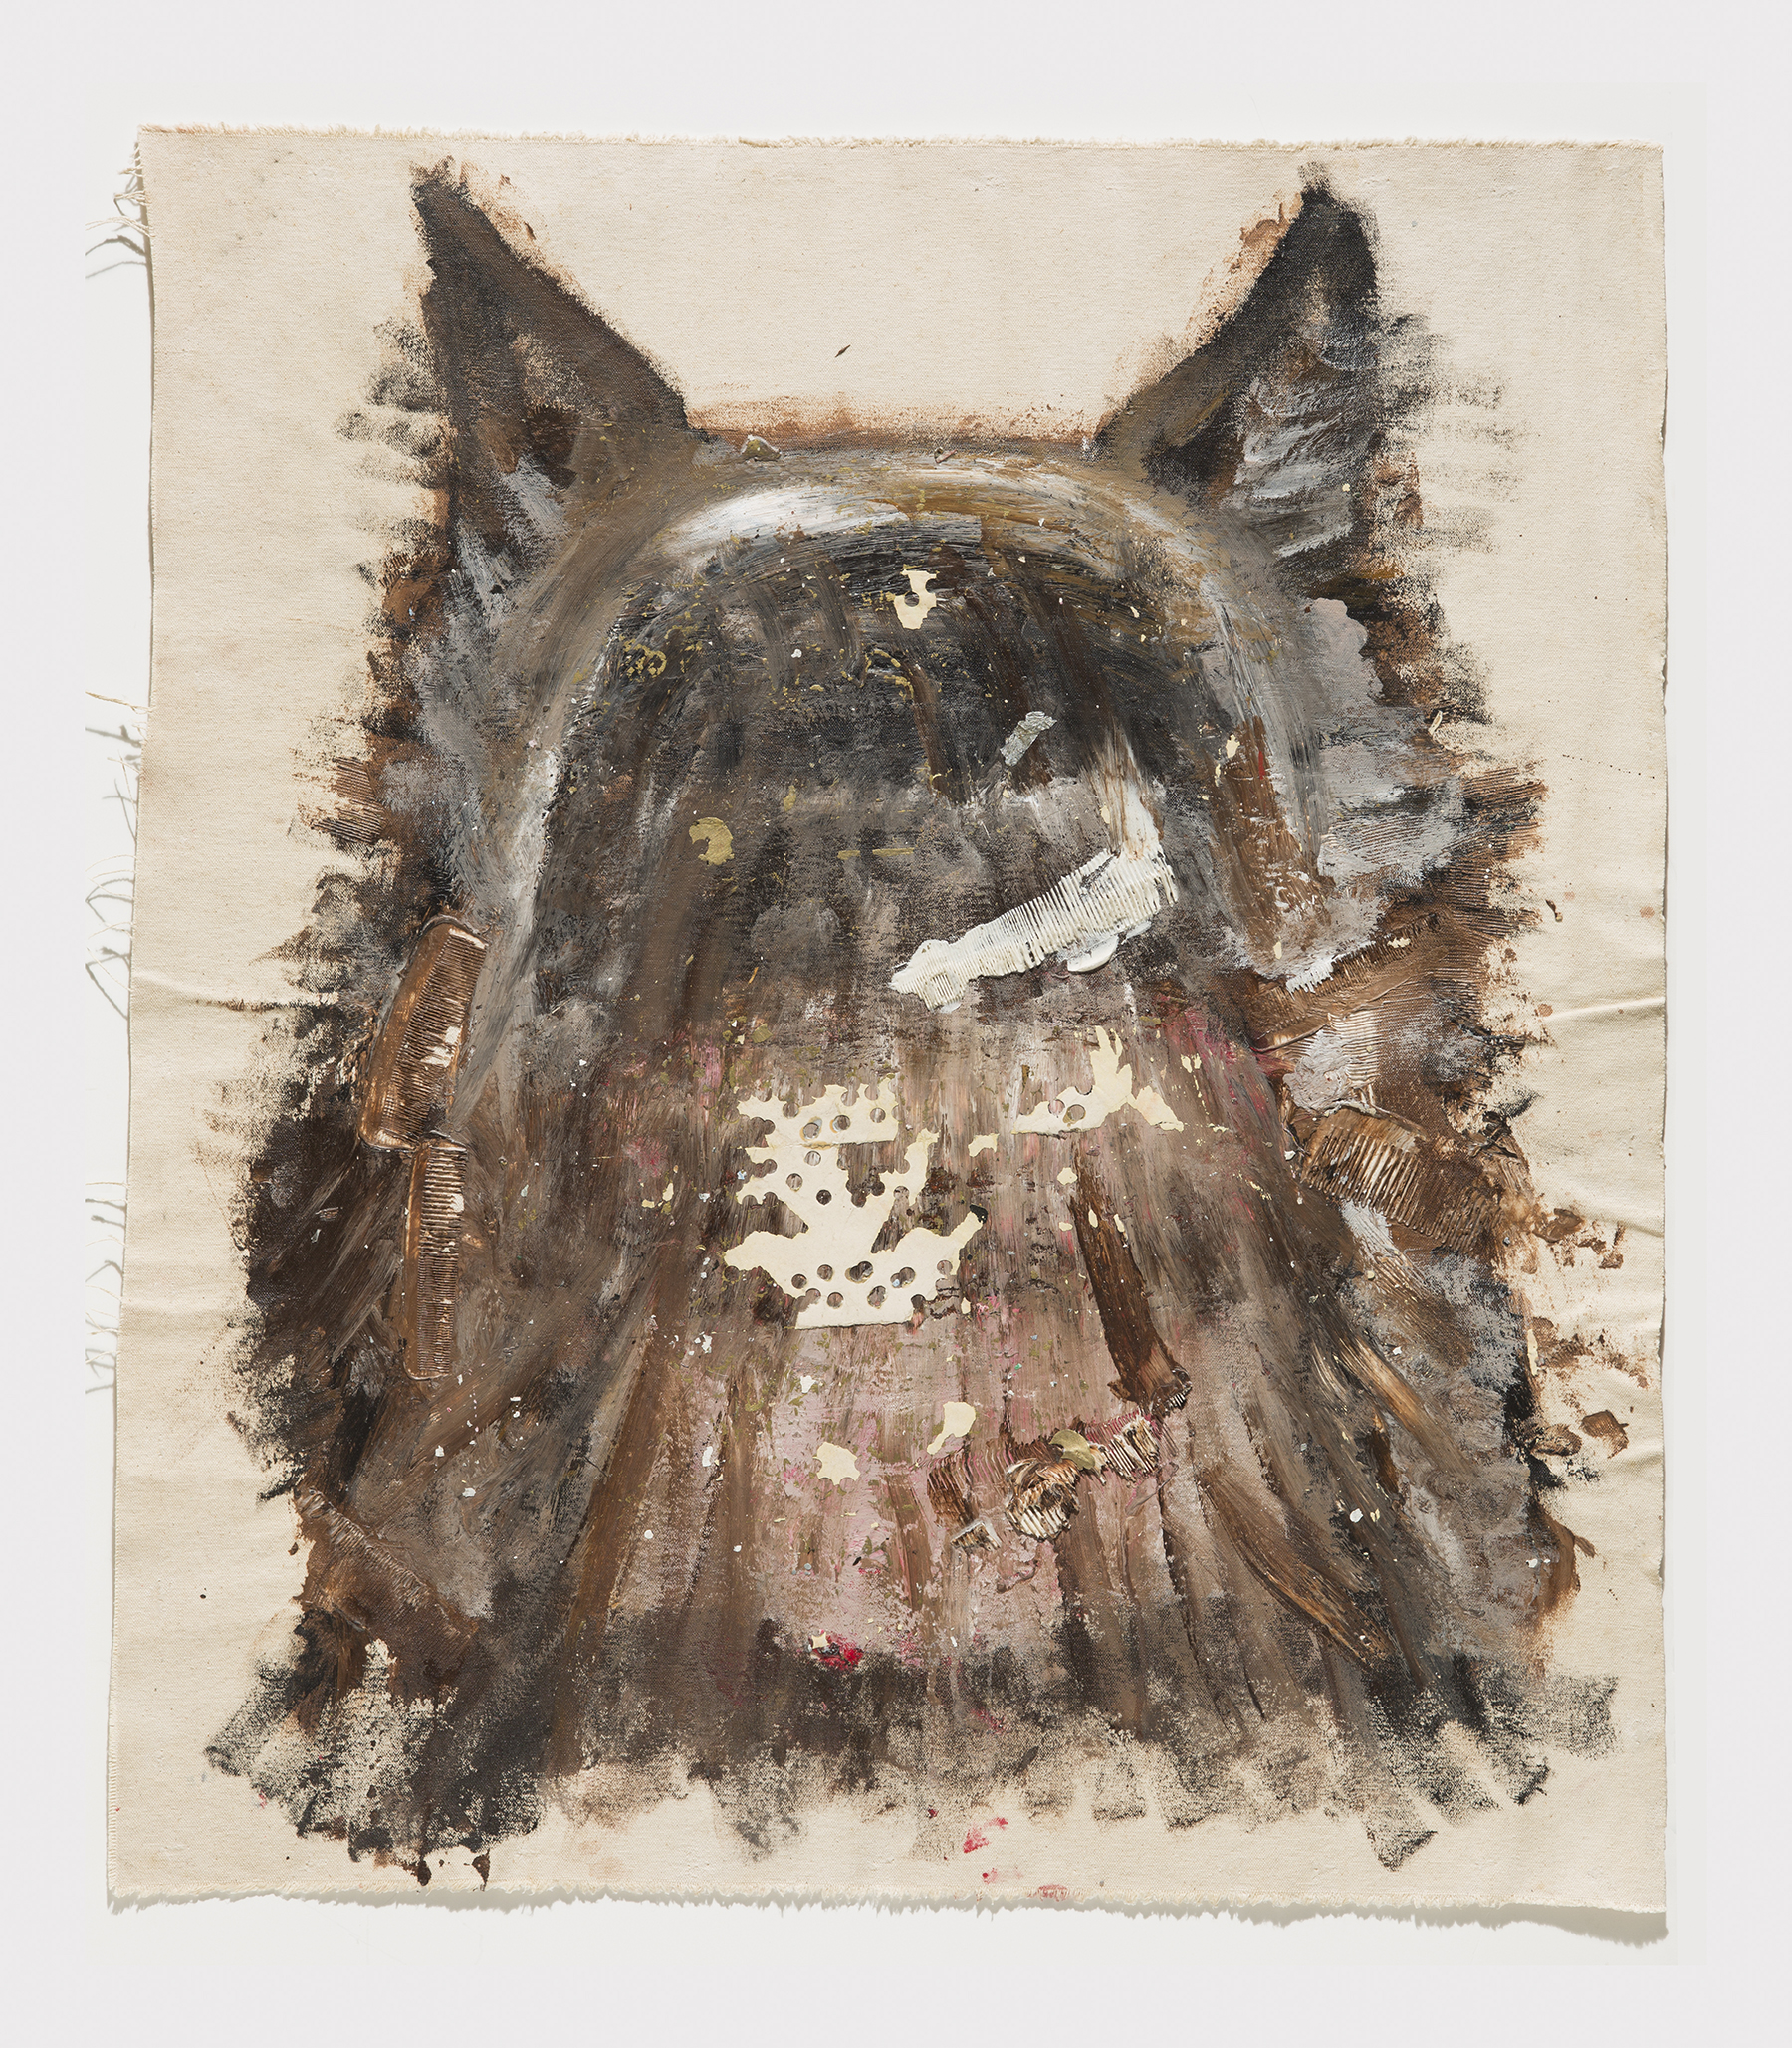 Untitled (Jack London's Dogs)